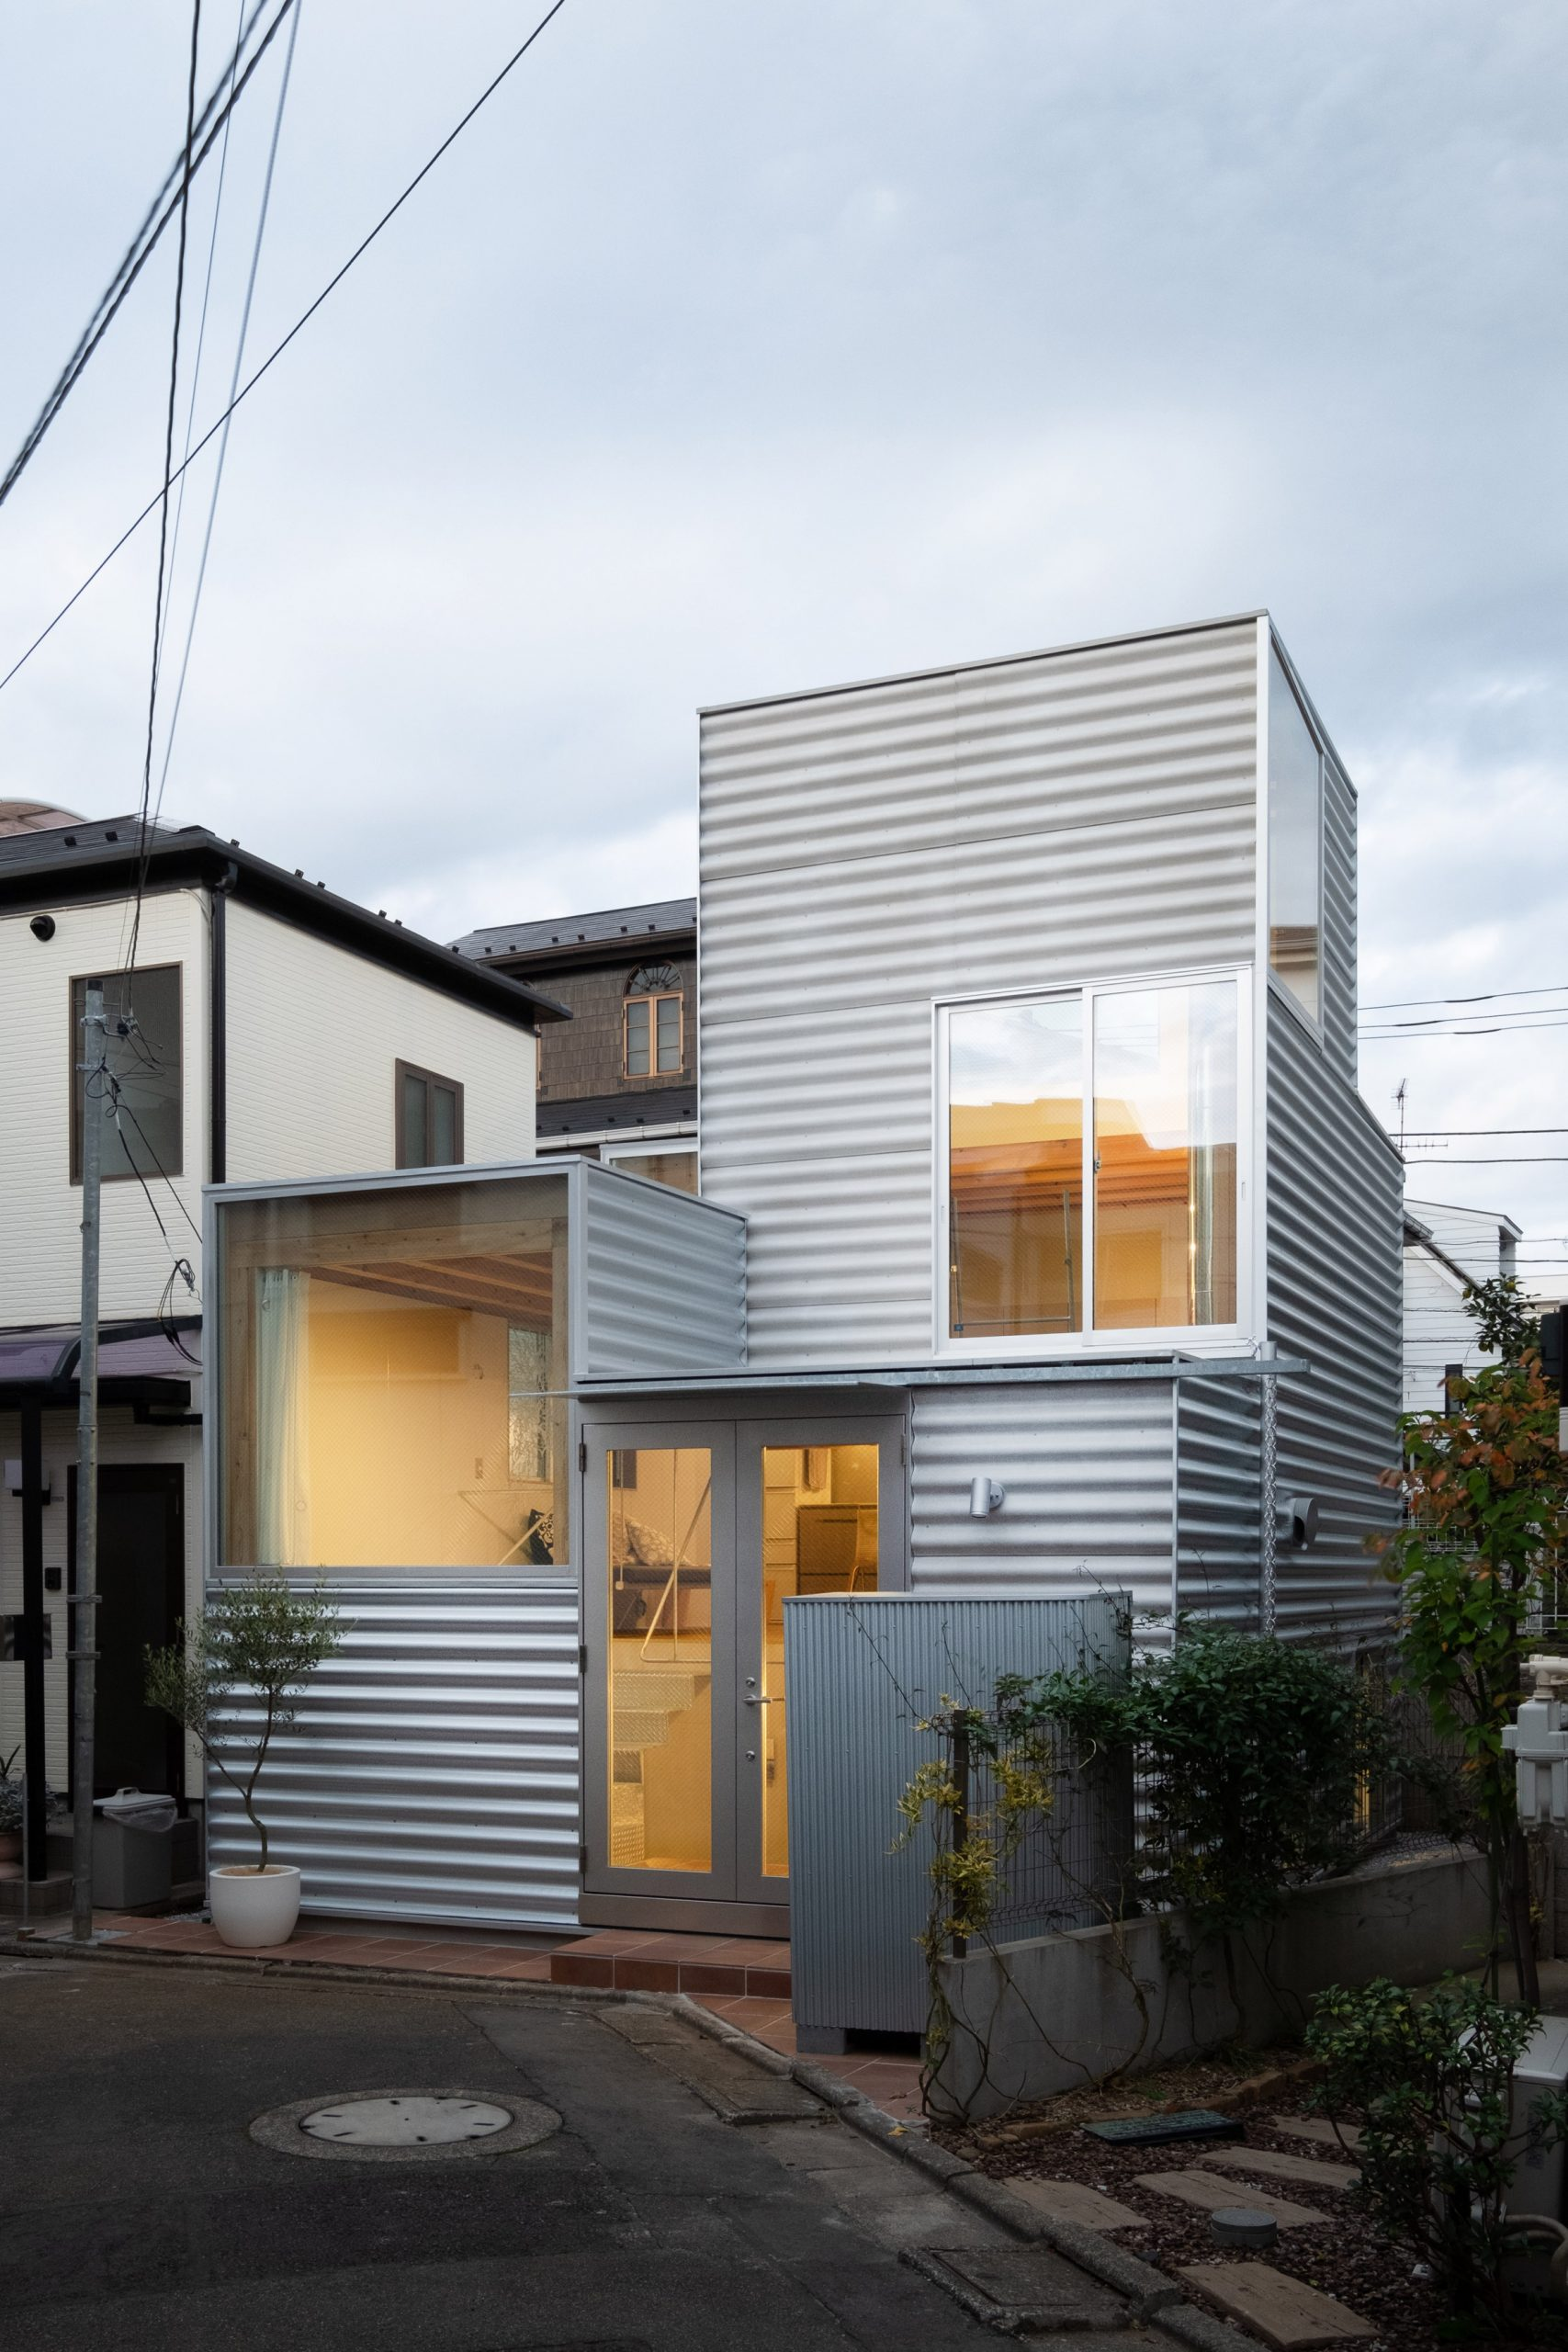 Stacked-box house with iron-clad facade